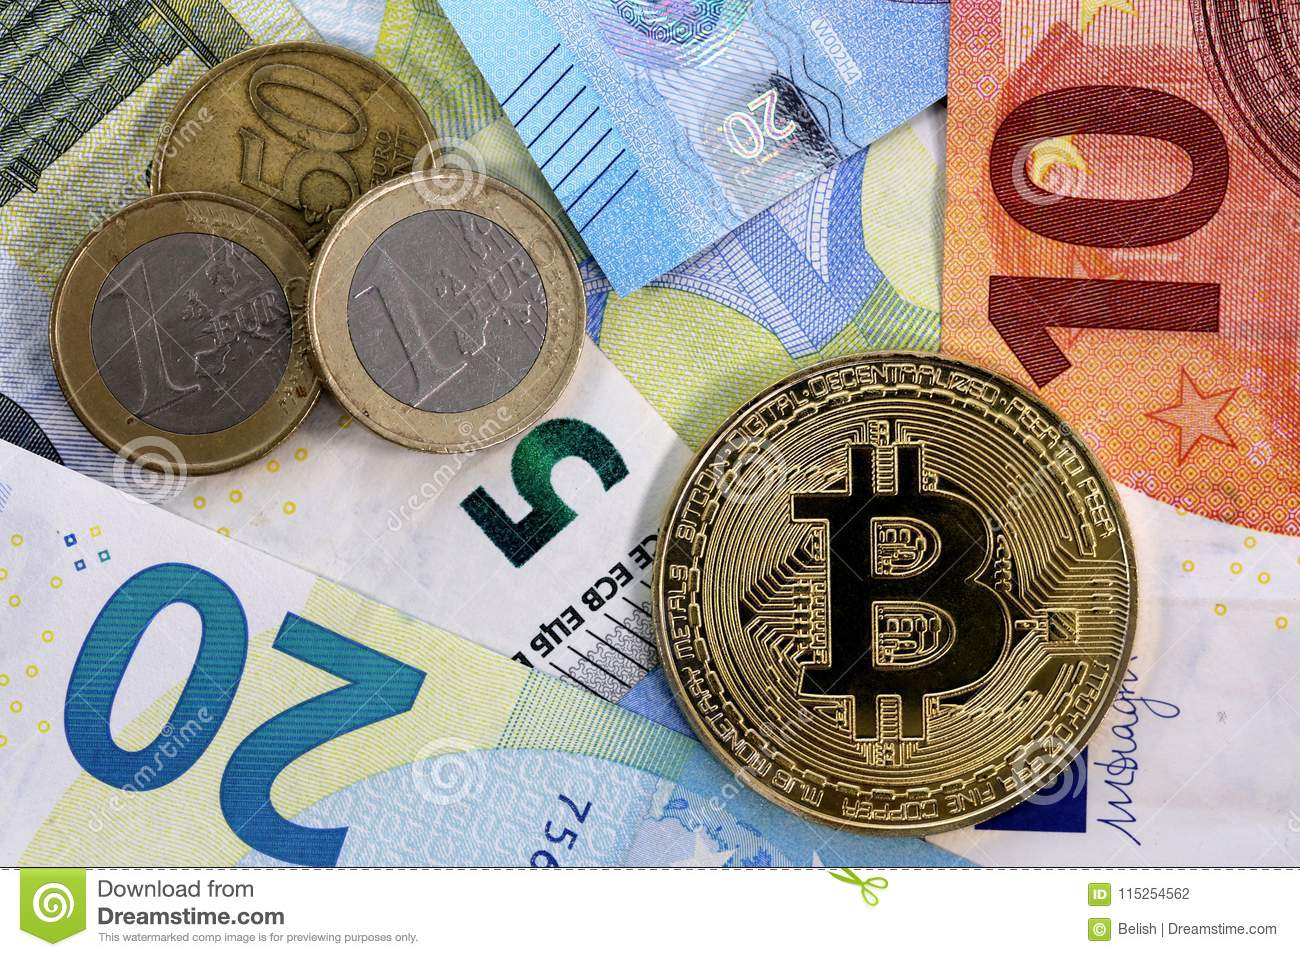 20 euros in bitcoins wiki fulham blackpool betting previews